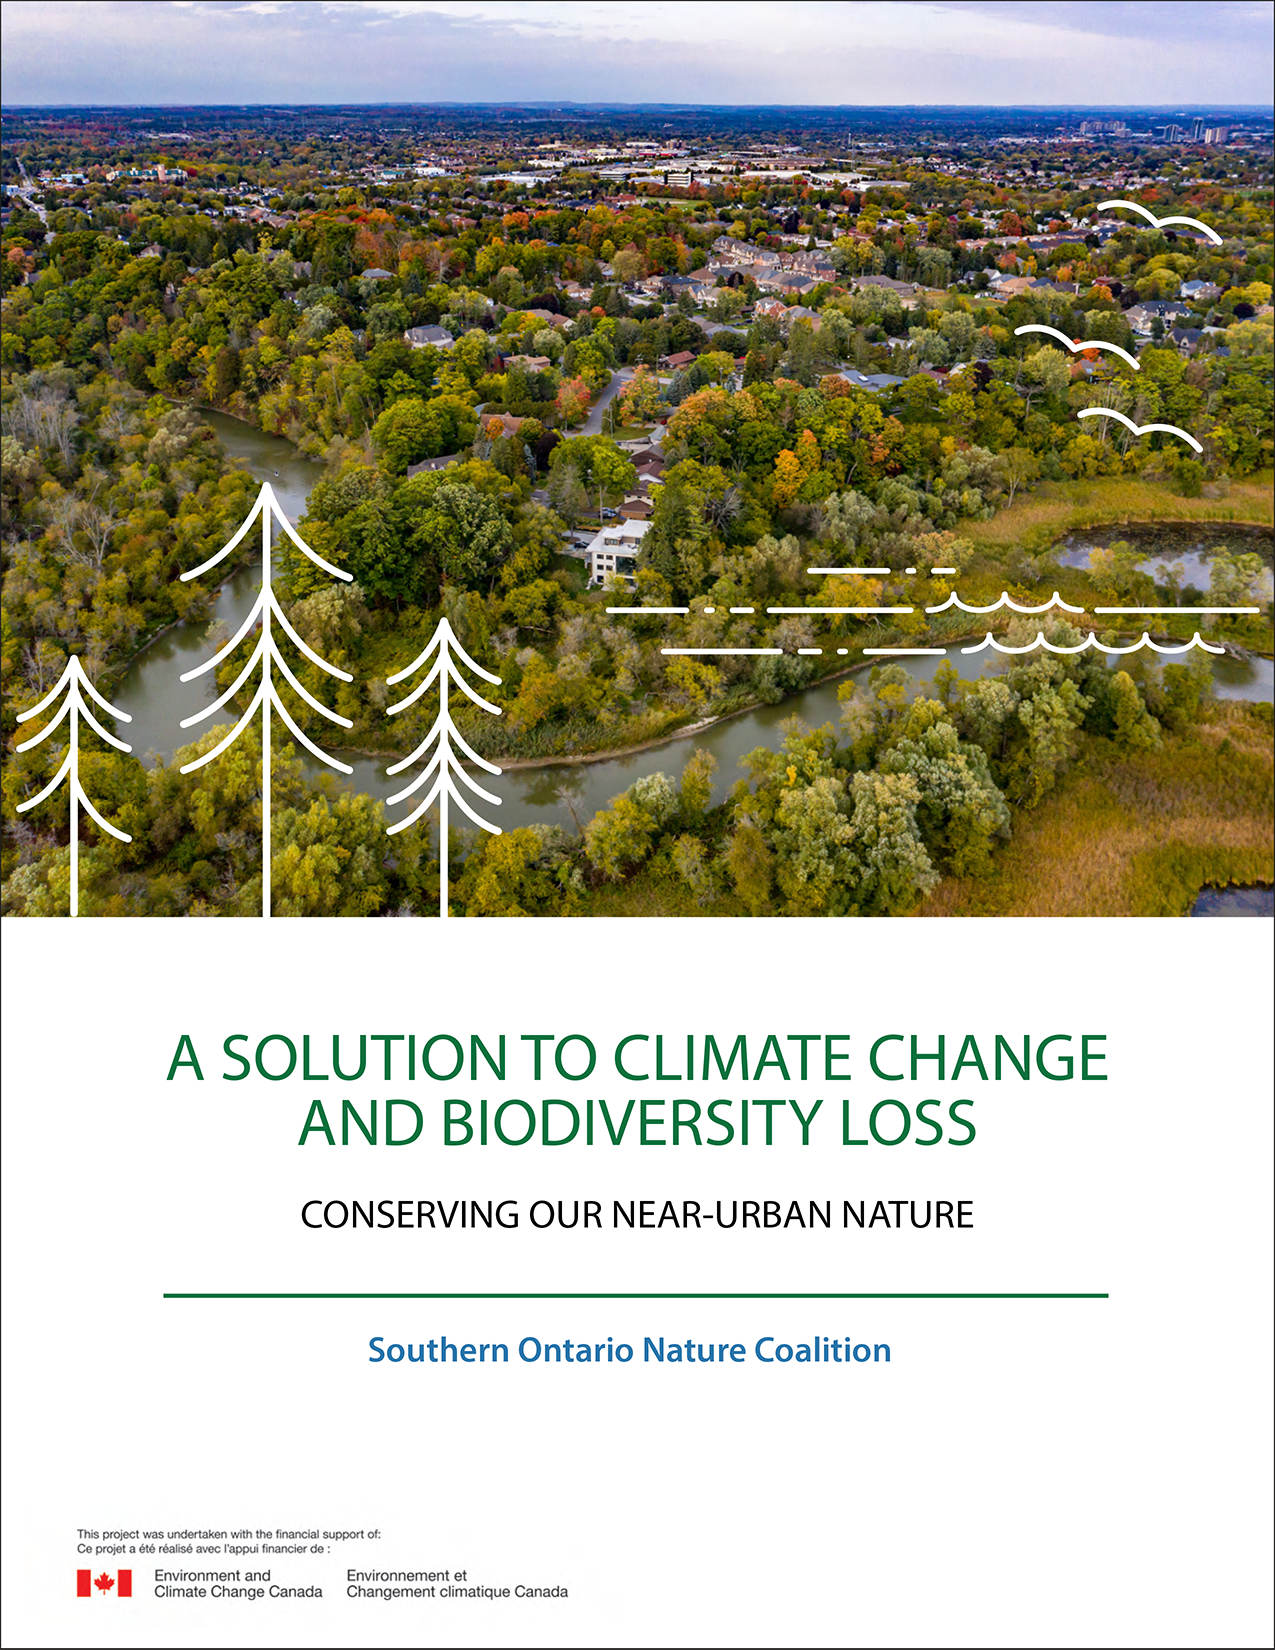 A SOLUTION TO CLIMATE CHANGE AND BIODIVERSITY LOSS